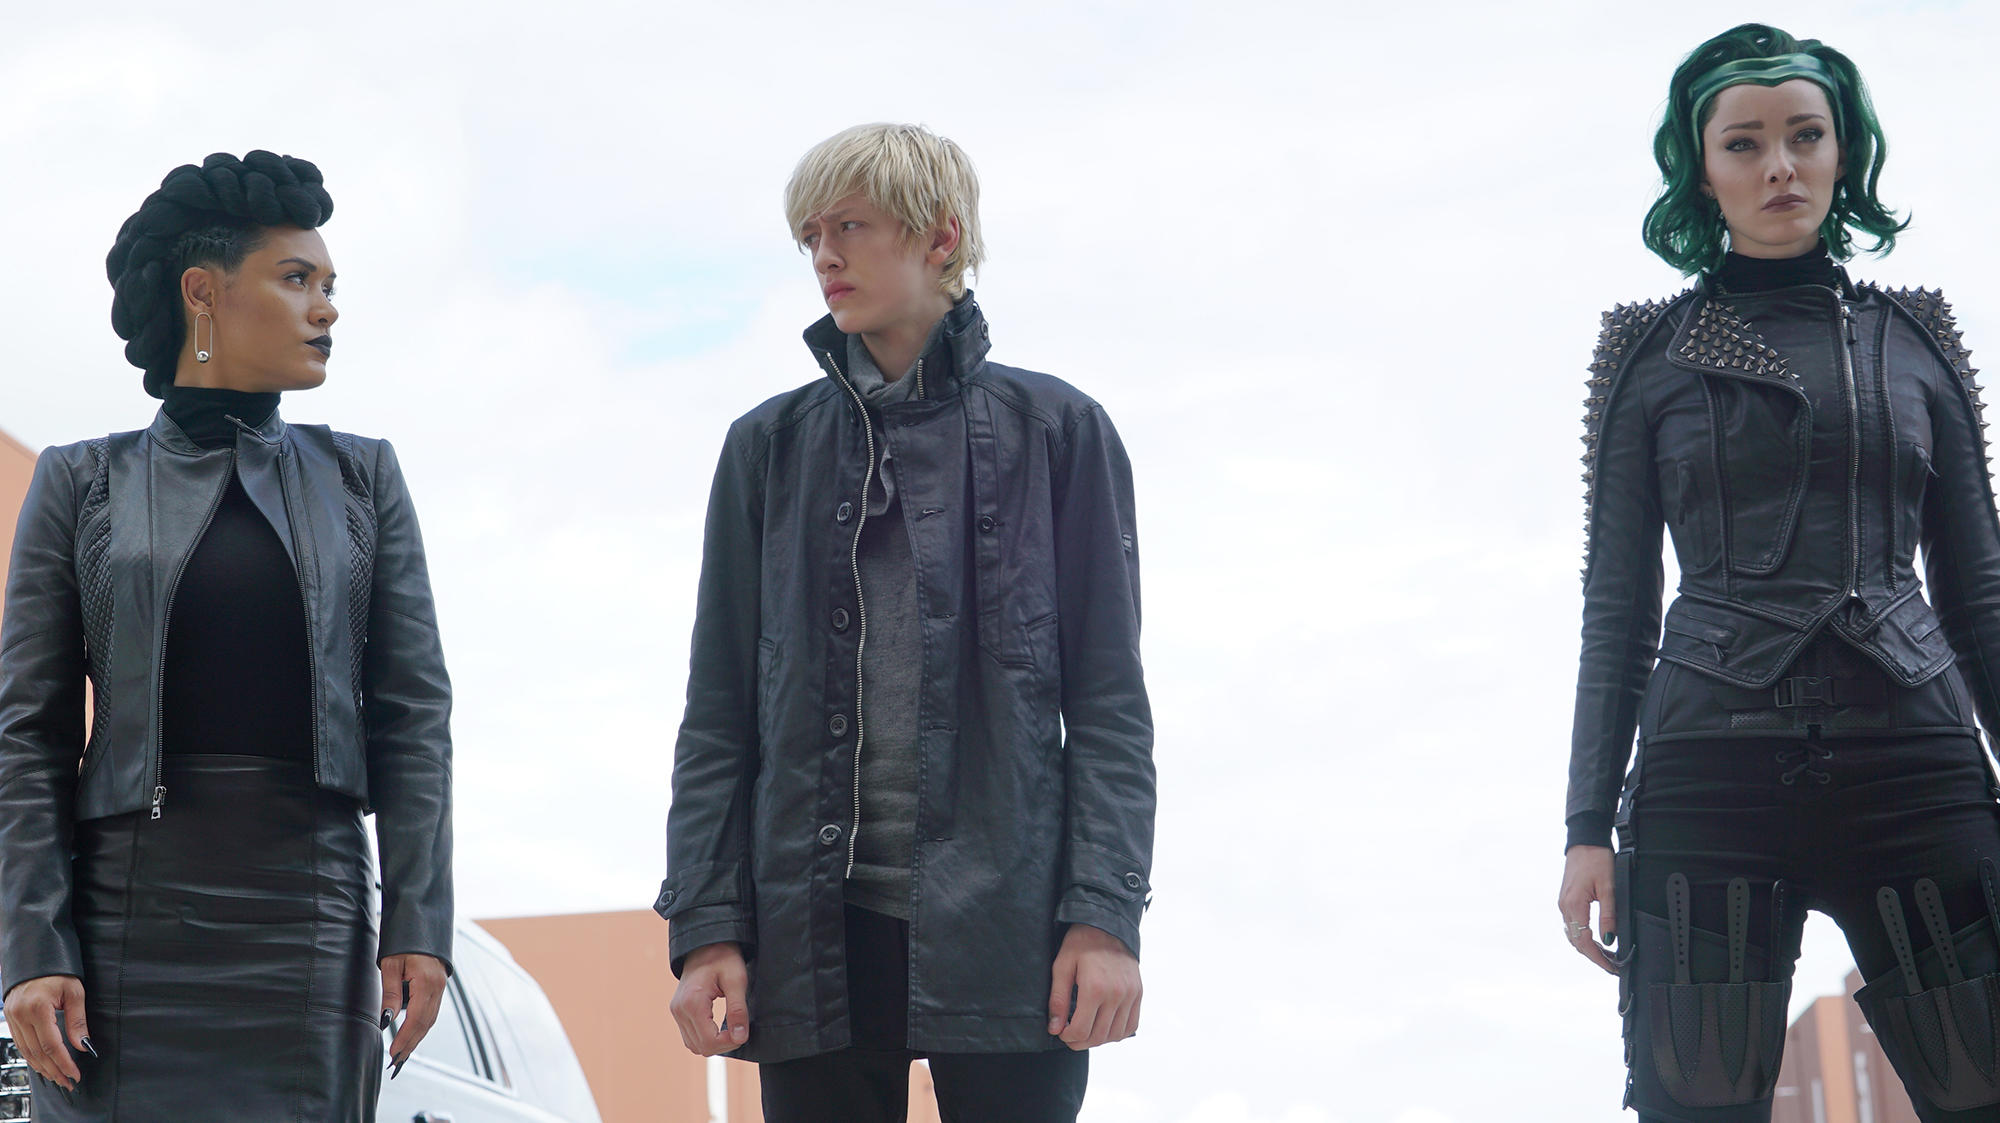 Photo from The Gifted